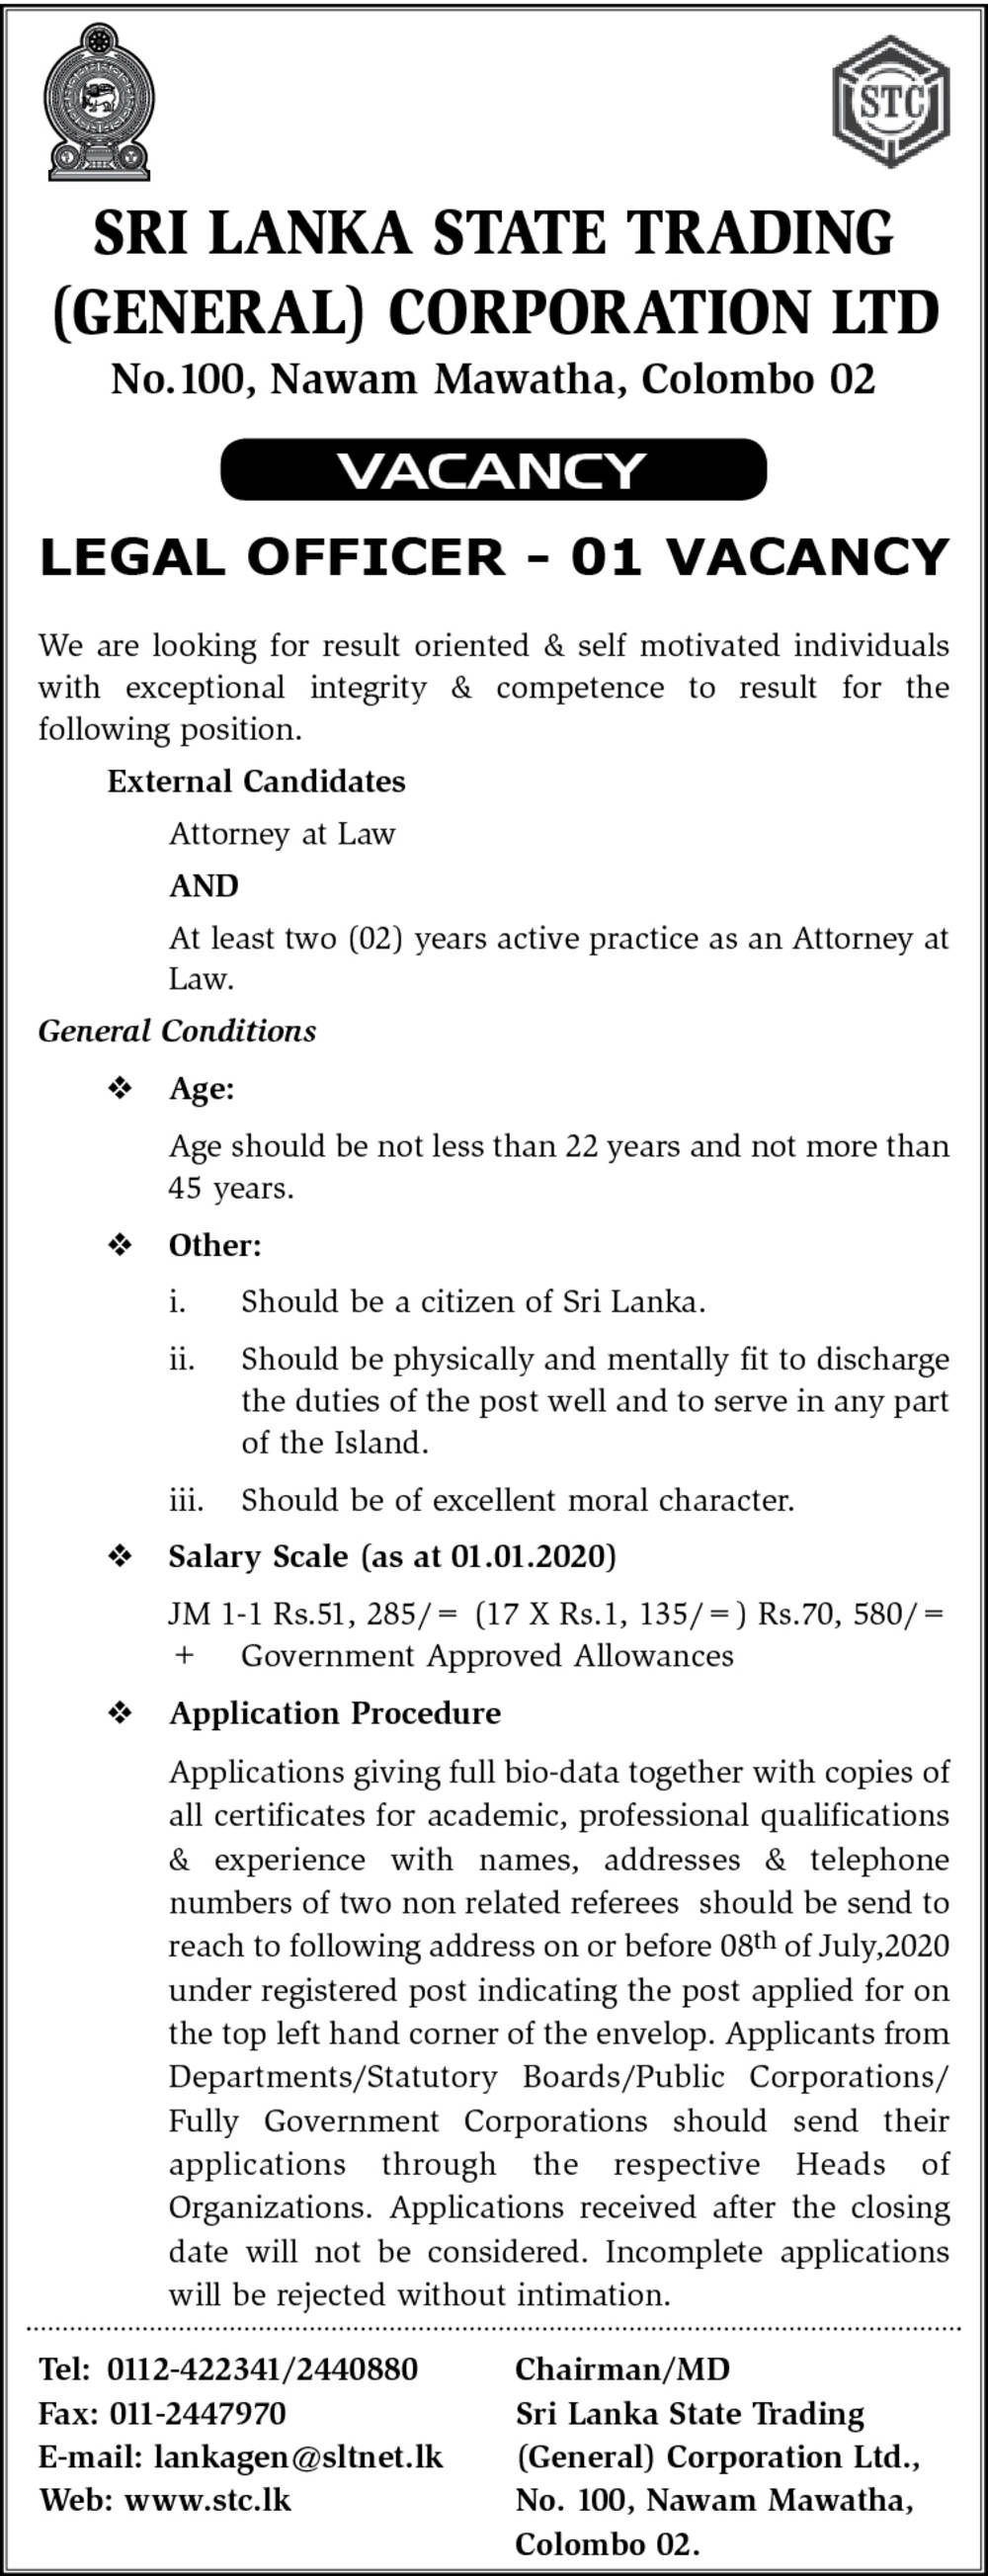 Legal Officer - Sri Lanka State Trading (General) Corporation Ltd